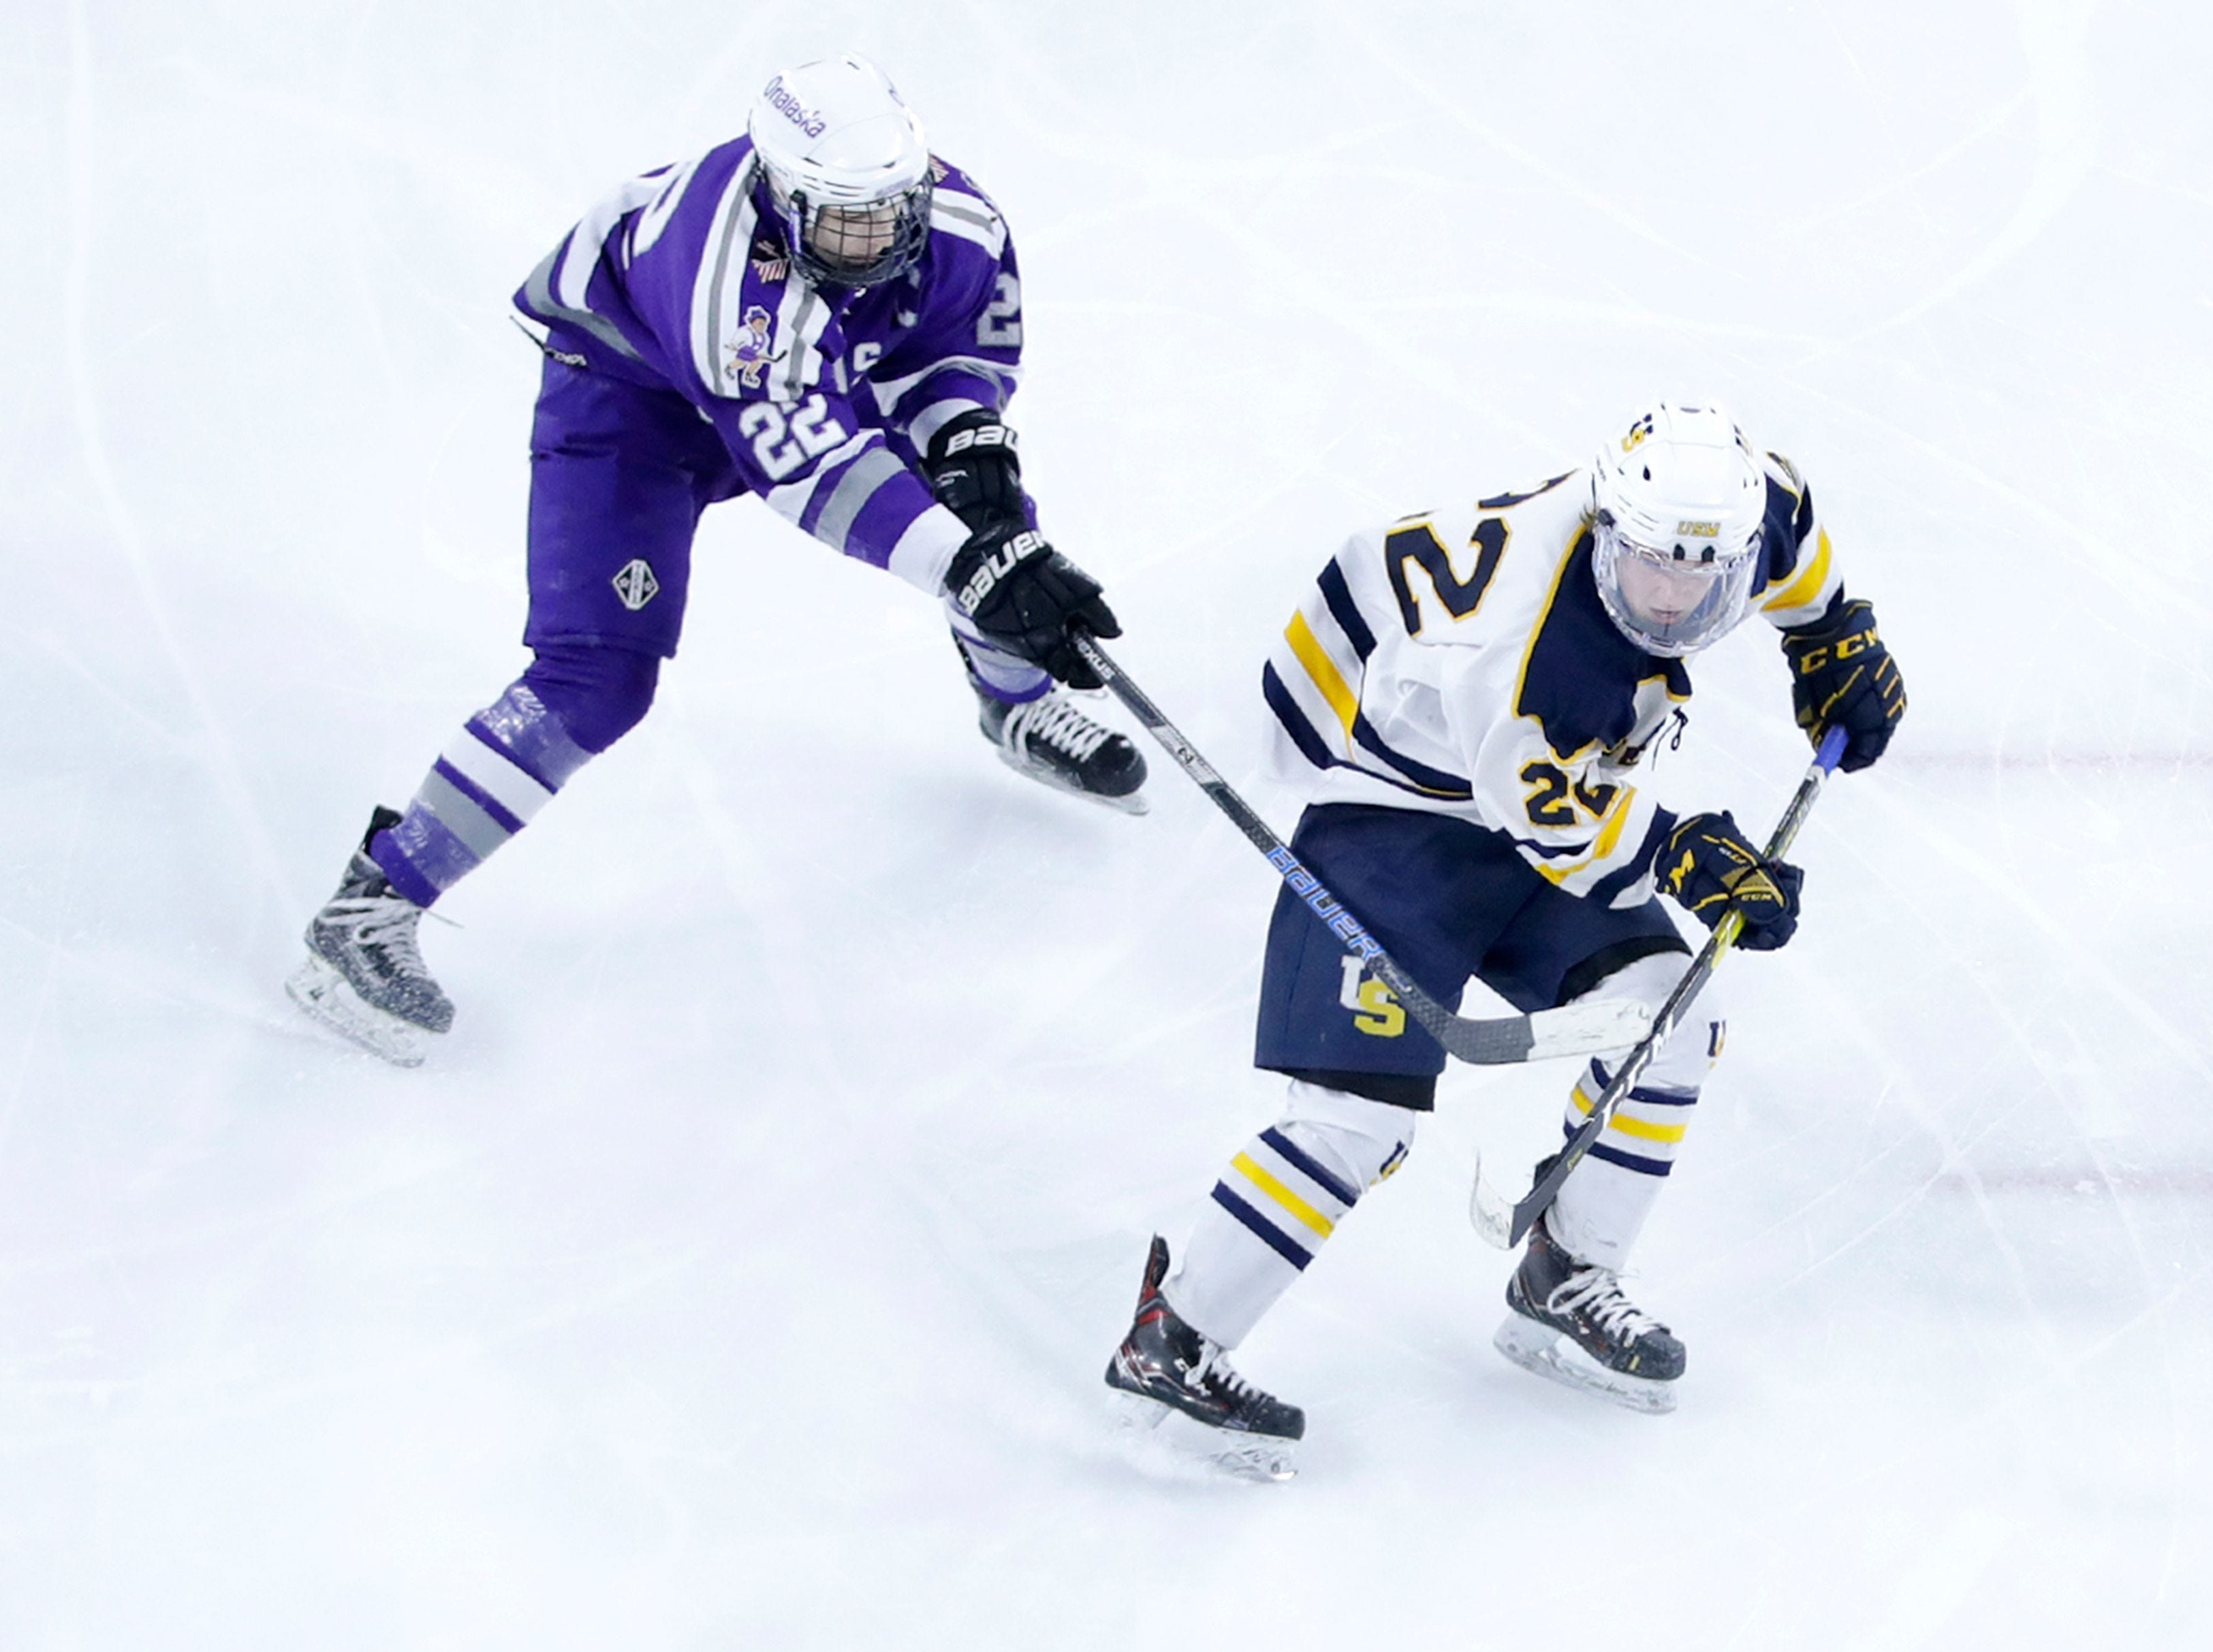 Jacob Como scores what proves to be the winning goal for University School of Milwaukee in the Wildcats' 4-3 victory over the Onalaska Co-op on Thursday.